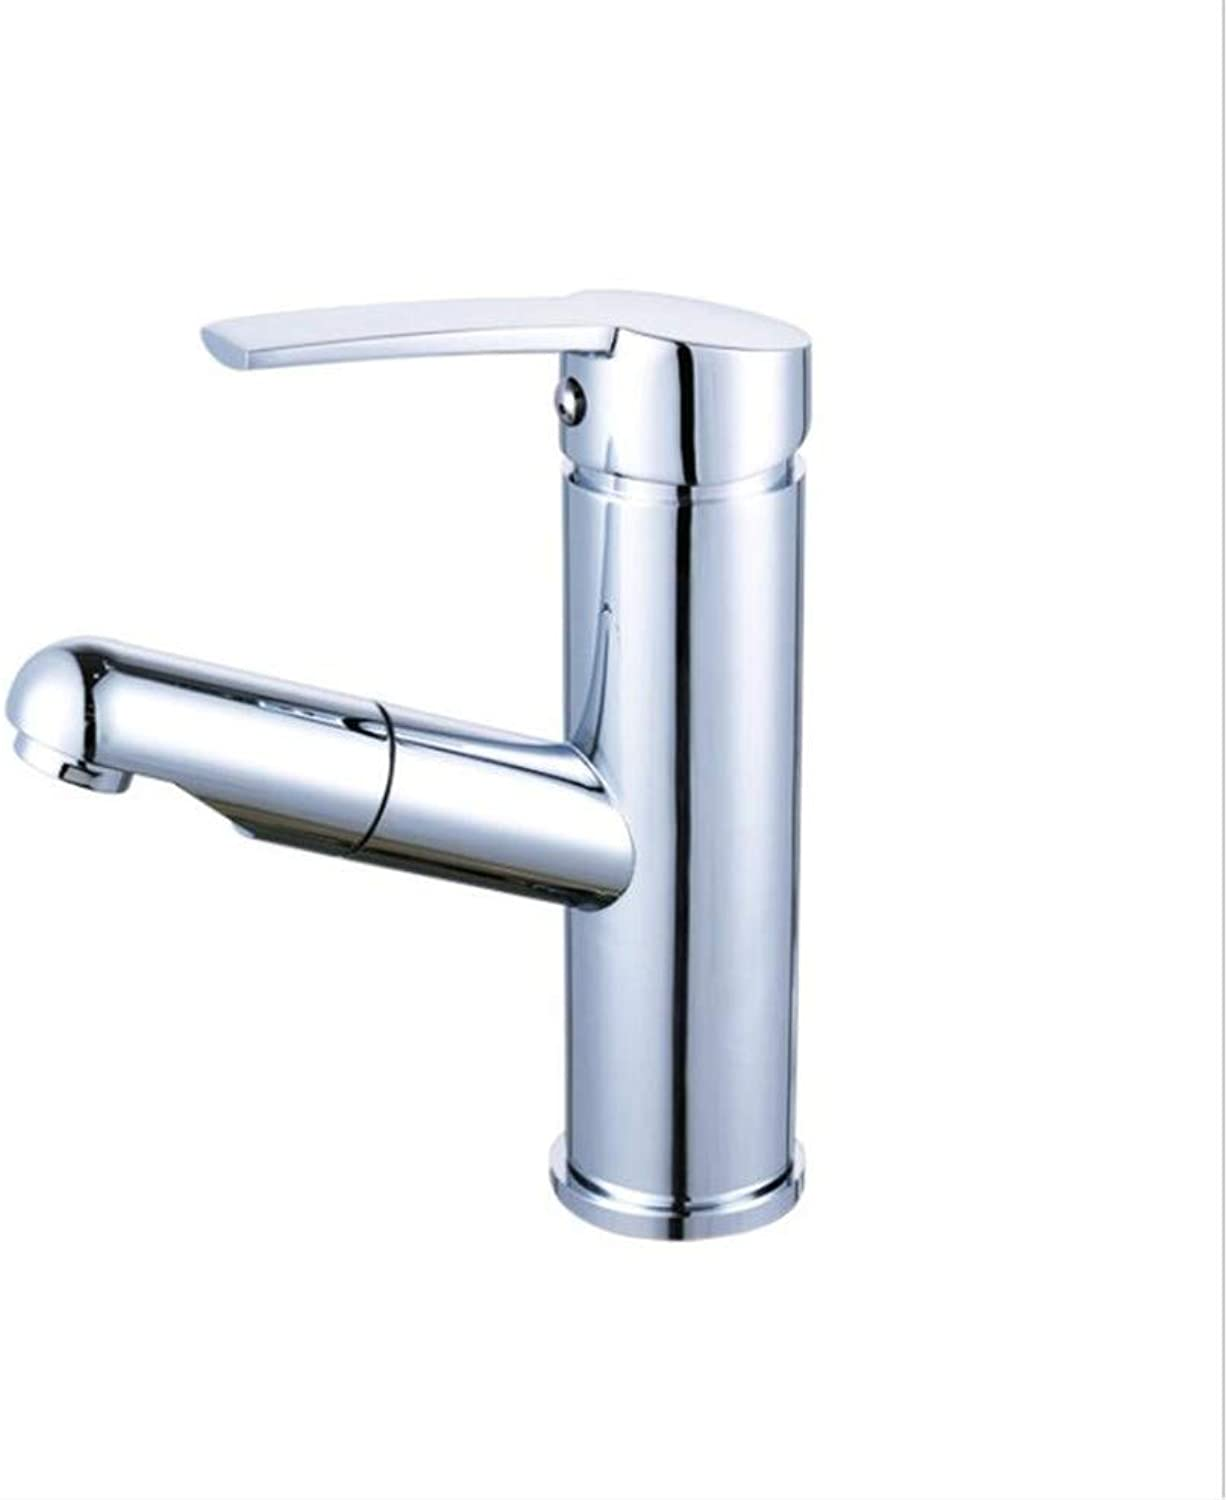 Modernsltbathroom Sink Basin Lever Mixer Tap Draw Up and Down Copper Basin Faucet, Bathroom Cabinet Faucet, Telescopic Cold and Hot Water Faucet